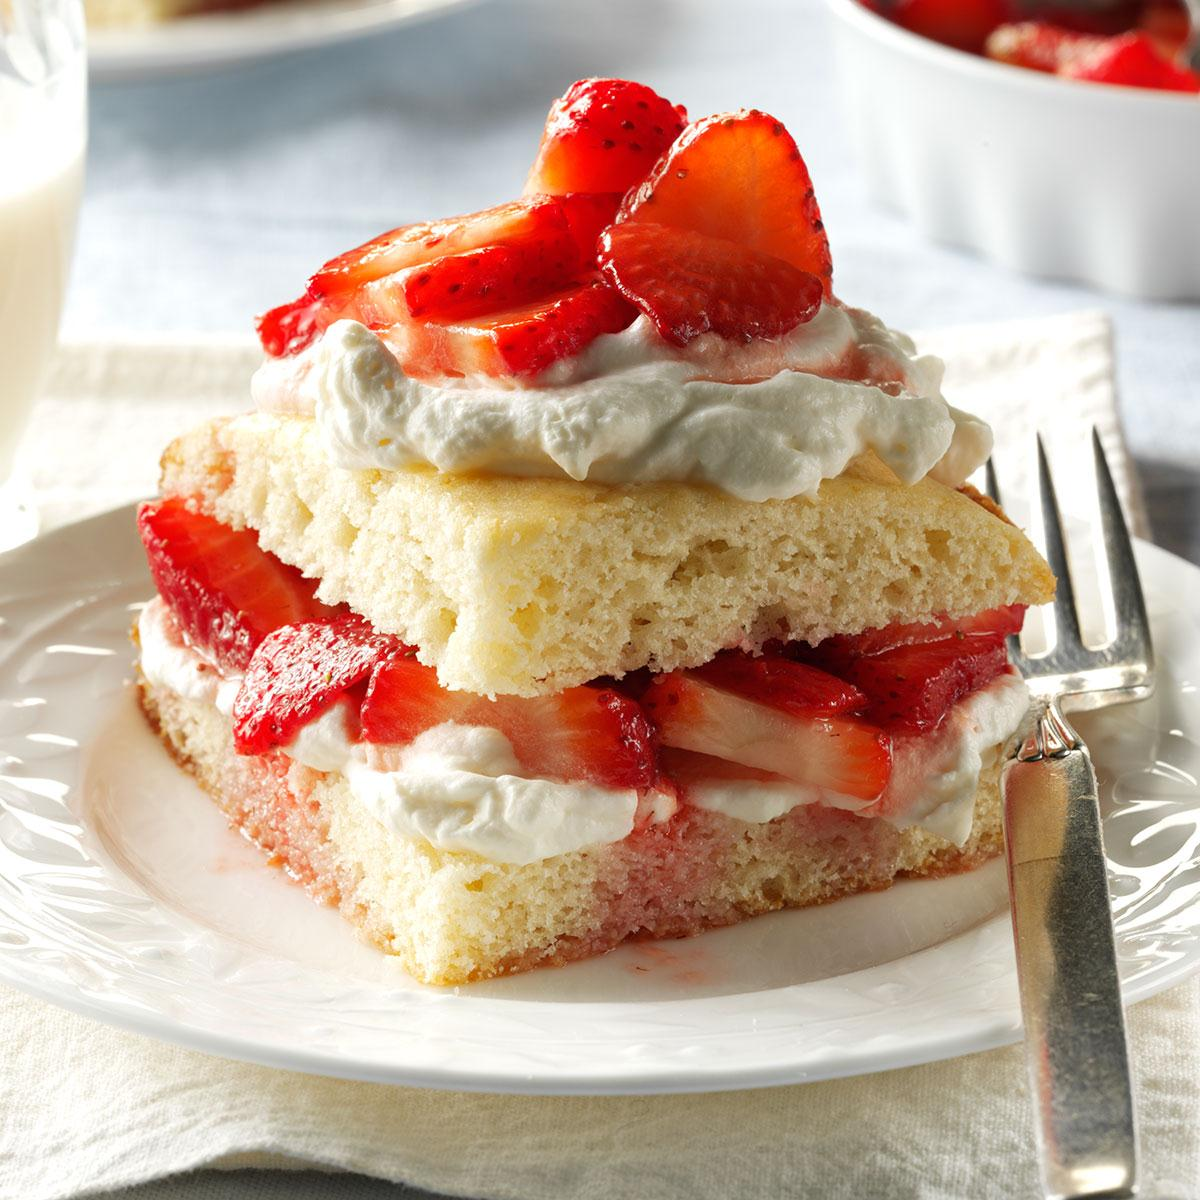 Strawberry Shortcake Recipe How To Make It Taste Of Home